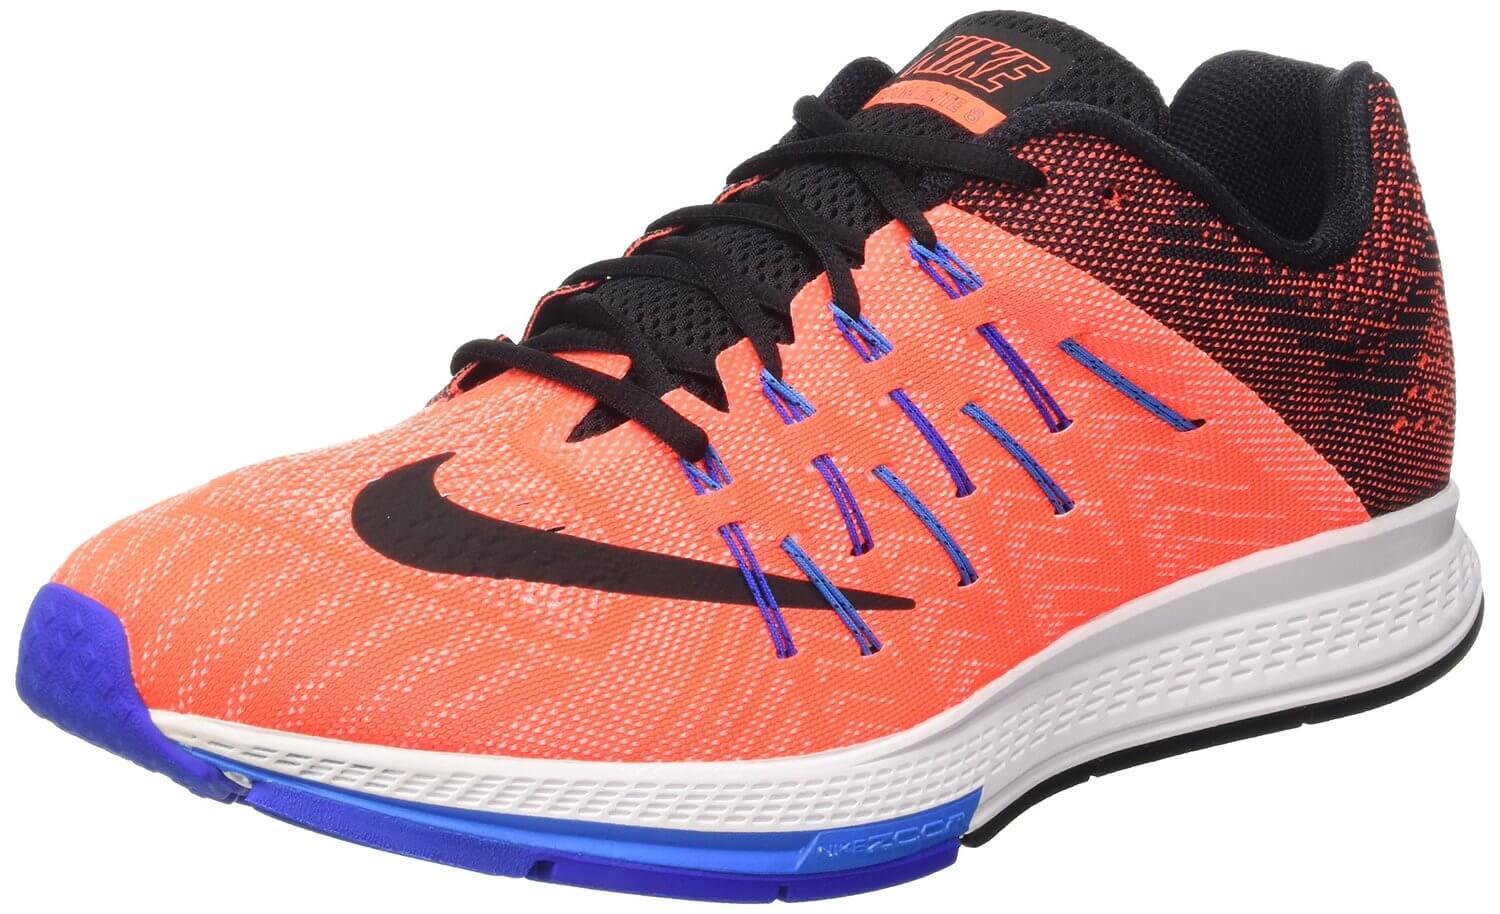 f75e6c3f33a19a The Nike Air Zoom Elite 8 is one of the best performance training shoes on  the ...